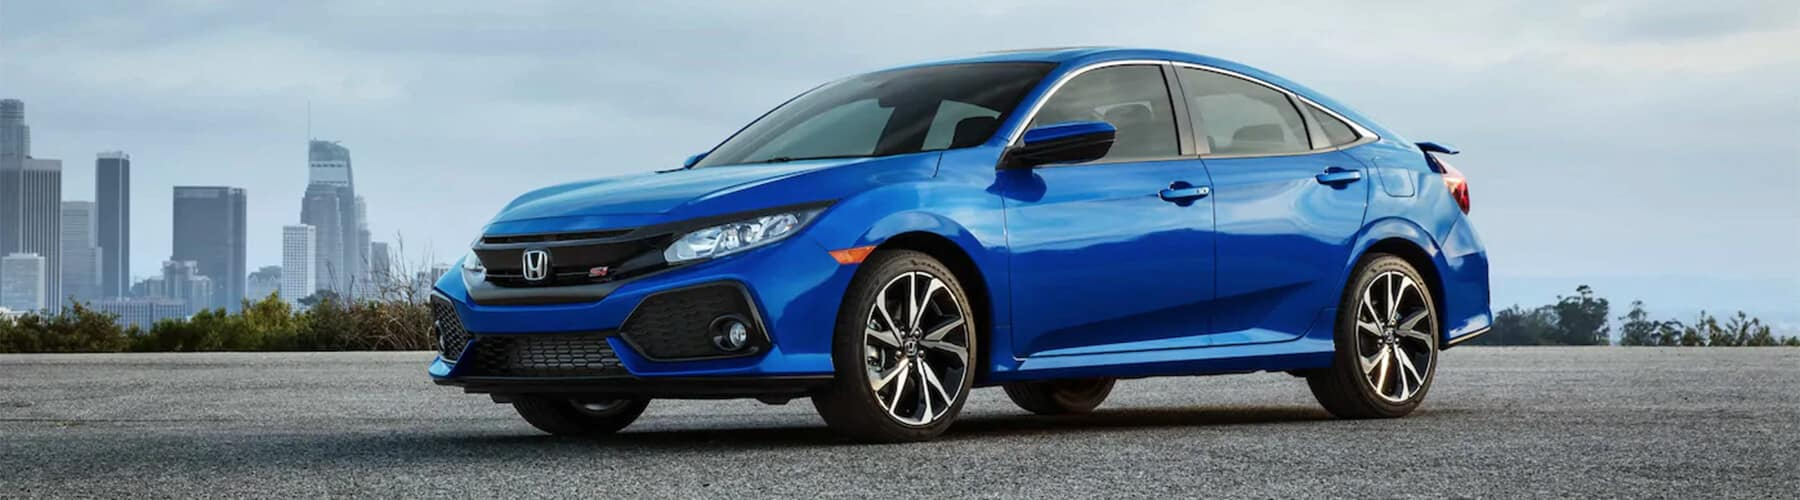 2019 Honda Civic Si Sedan Banner